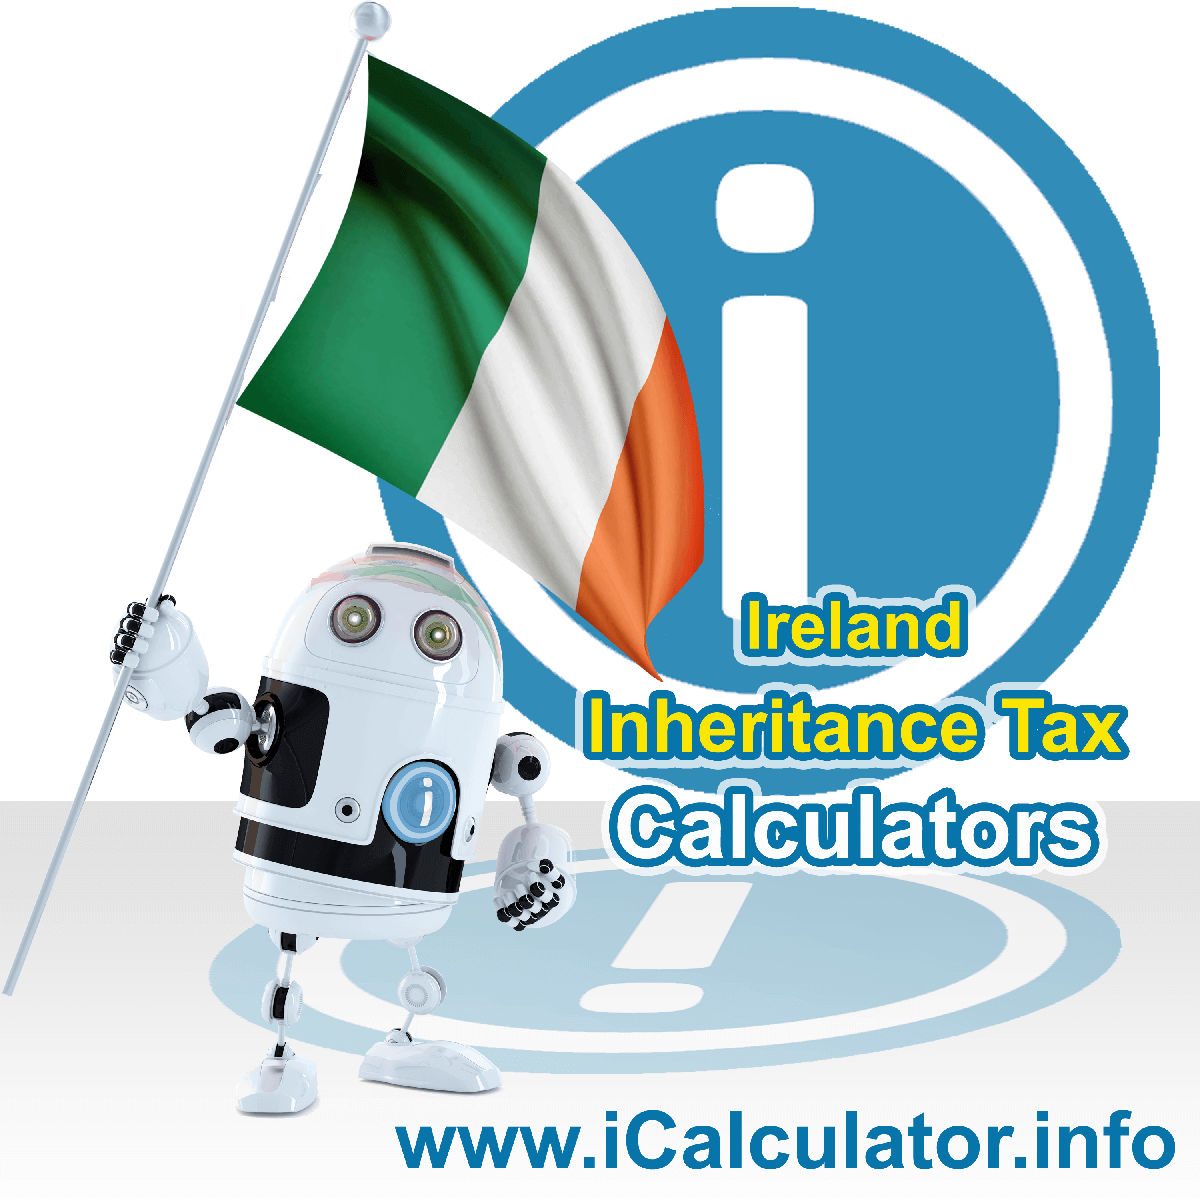 Ireland Inheritance Tax Calculator. This image shows the Ireland flag and information relating to the inheritance tax rate formula used for calculating Inheritance Tax in Ireland using the Ireland Inheritance Tax Calculator in 2020